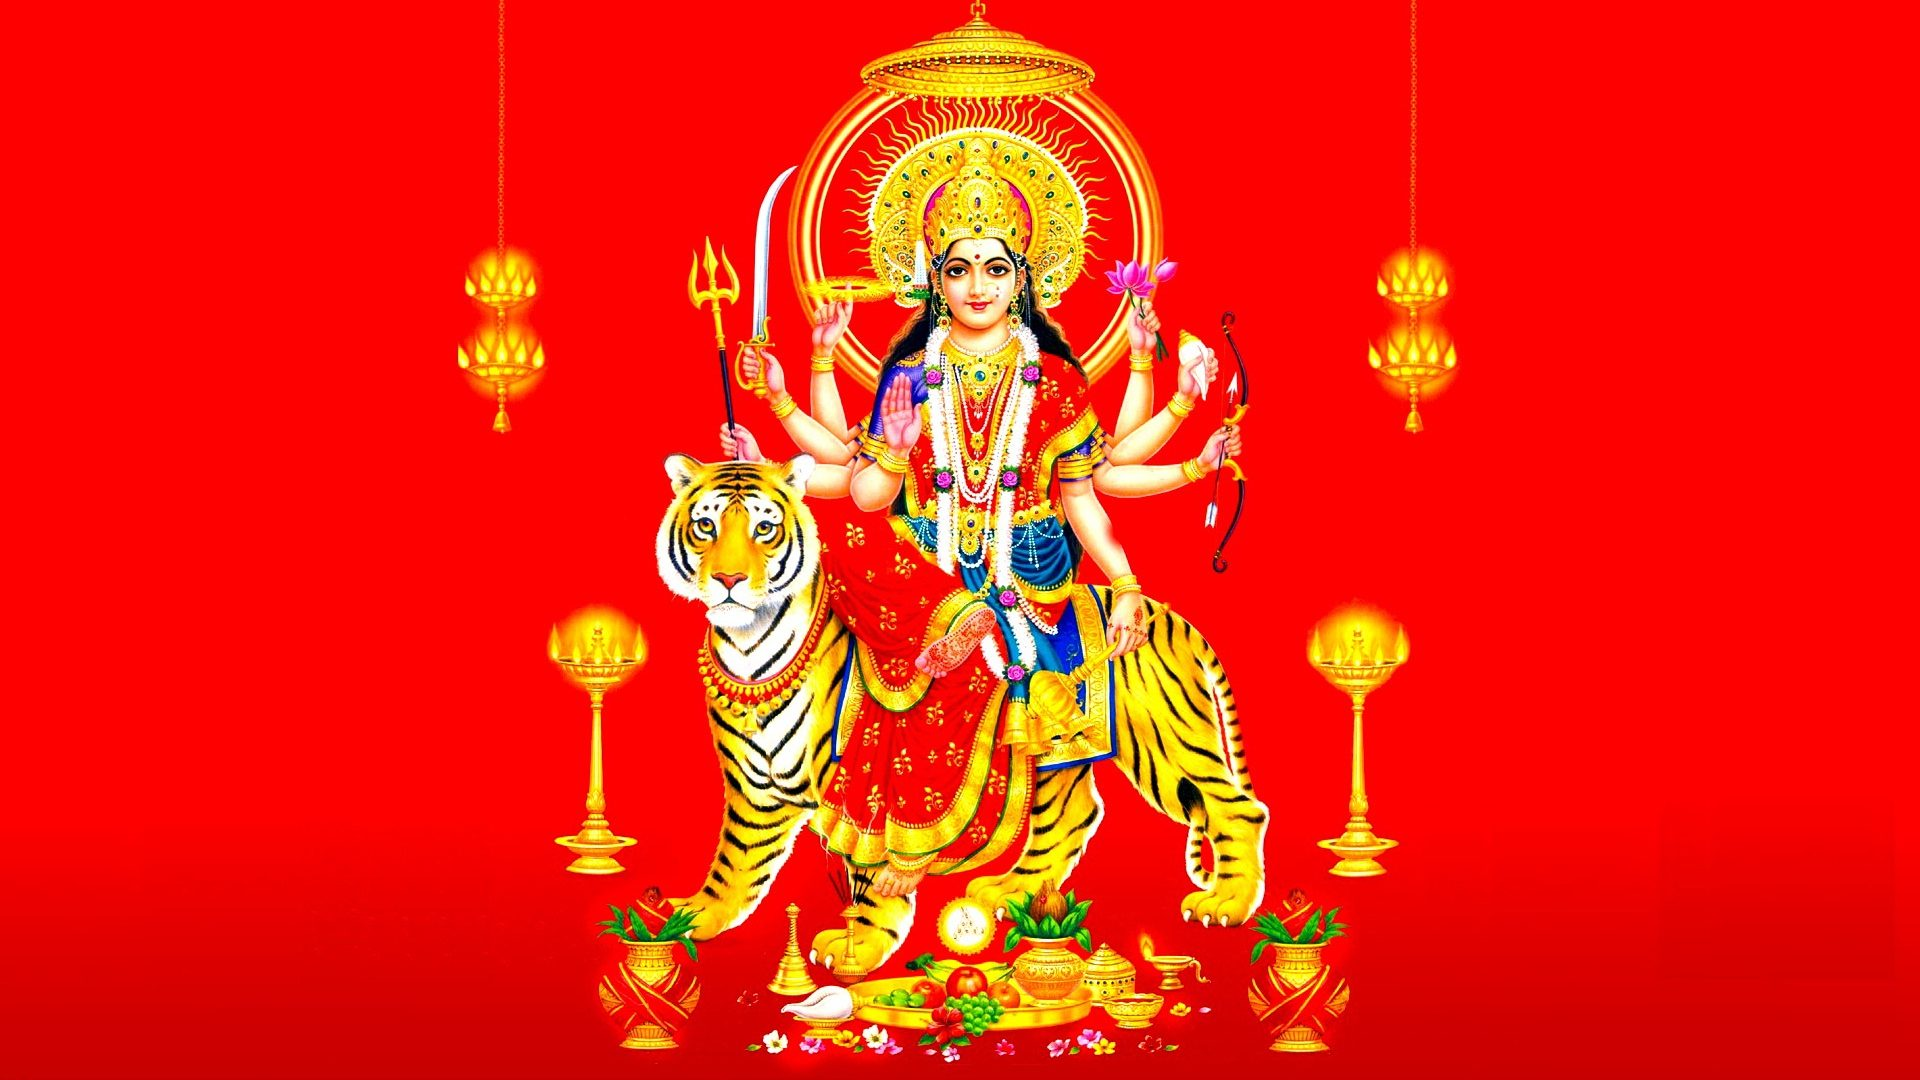 3d Wallpaper Jai Mata Di Hondu Goddess Durga Mata Hindu Religious Hd Wallpapers